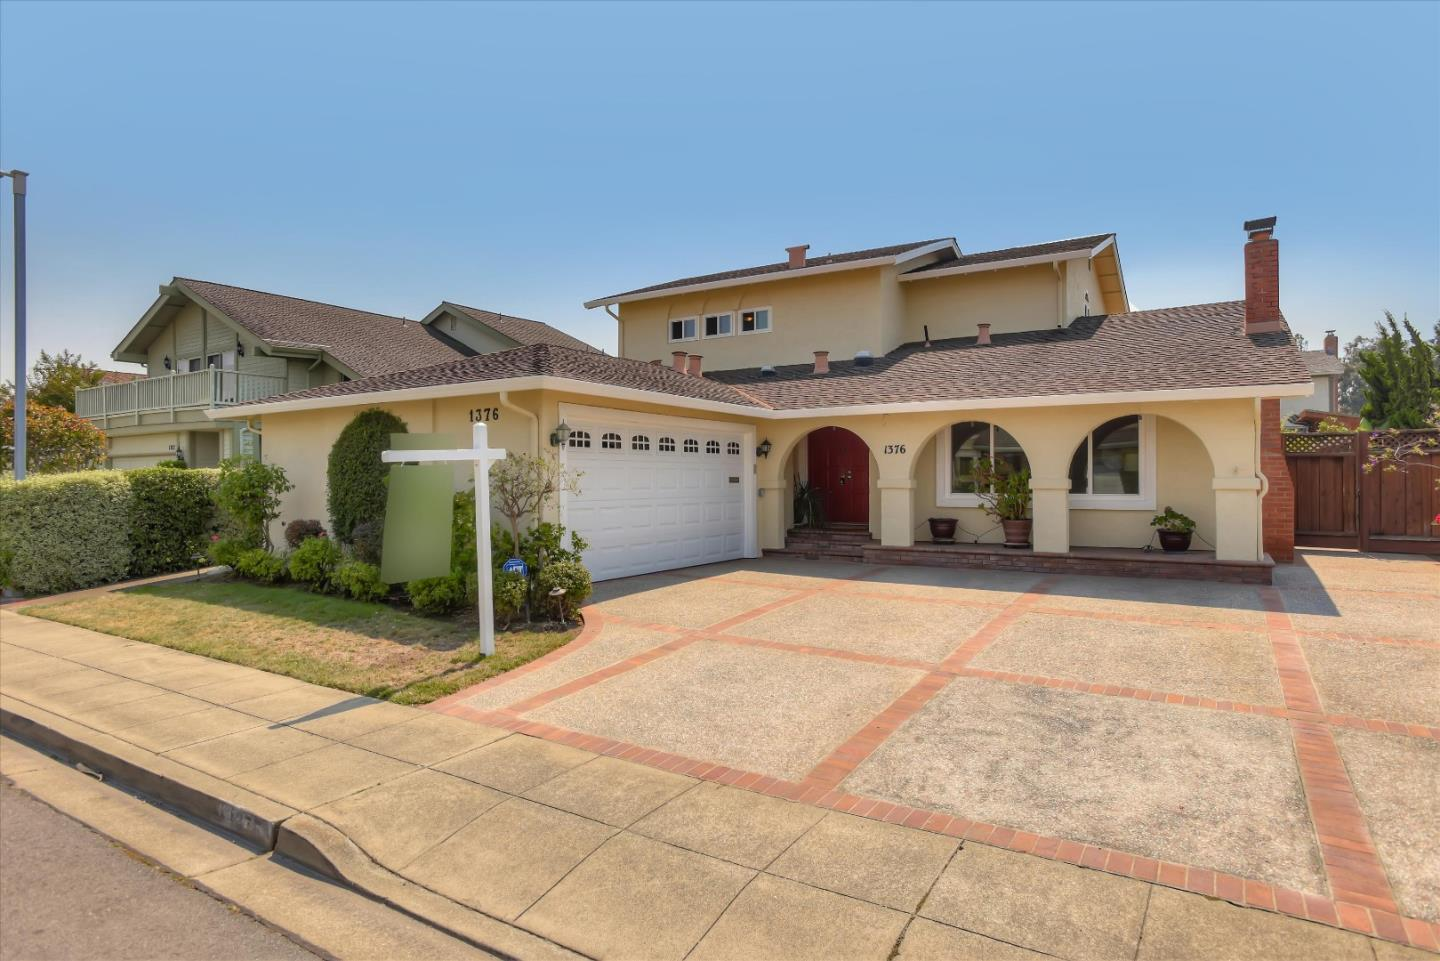 Fantastic opportunity to own one of Foster City's most highly sought after neighborhoods-Carmel Village. This impressive two story contemporary, rarely available, 5 bedroom, 2 master suites, 3 full baths sits on a 5,700 square foot lot and located on a quiet street. Loads of sunlight fill this bright open floor plan with chef's kitchen, custom cabinetry & stainless steel appliances, modern touches throughout, separate dining room, professionally landscaped front/back yards, dual pane windows, attached 2 car garage. Conveniently located in the heart of Foster City within a short walk to Sunfish Park, the Levee Bay Trail, great shopping and much more. Easy access to major transportation routes, technology campuses, and award winning Foster City schools. Perfect for the growing family! Make this wonderful home yours!